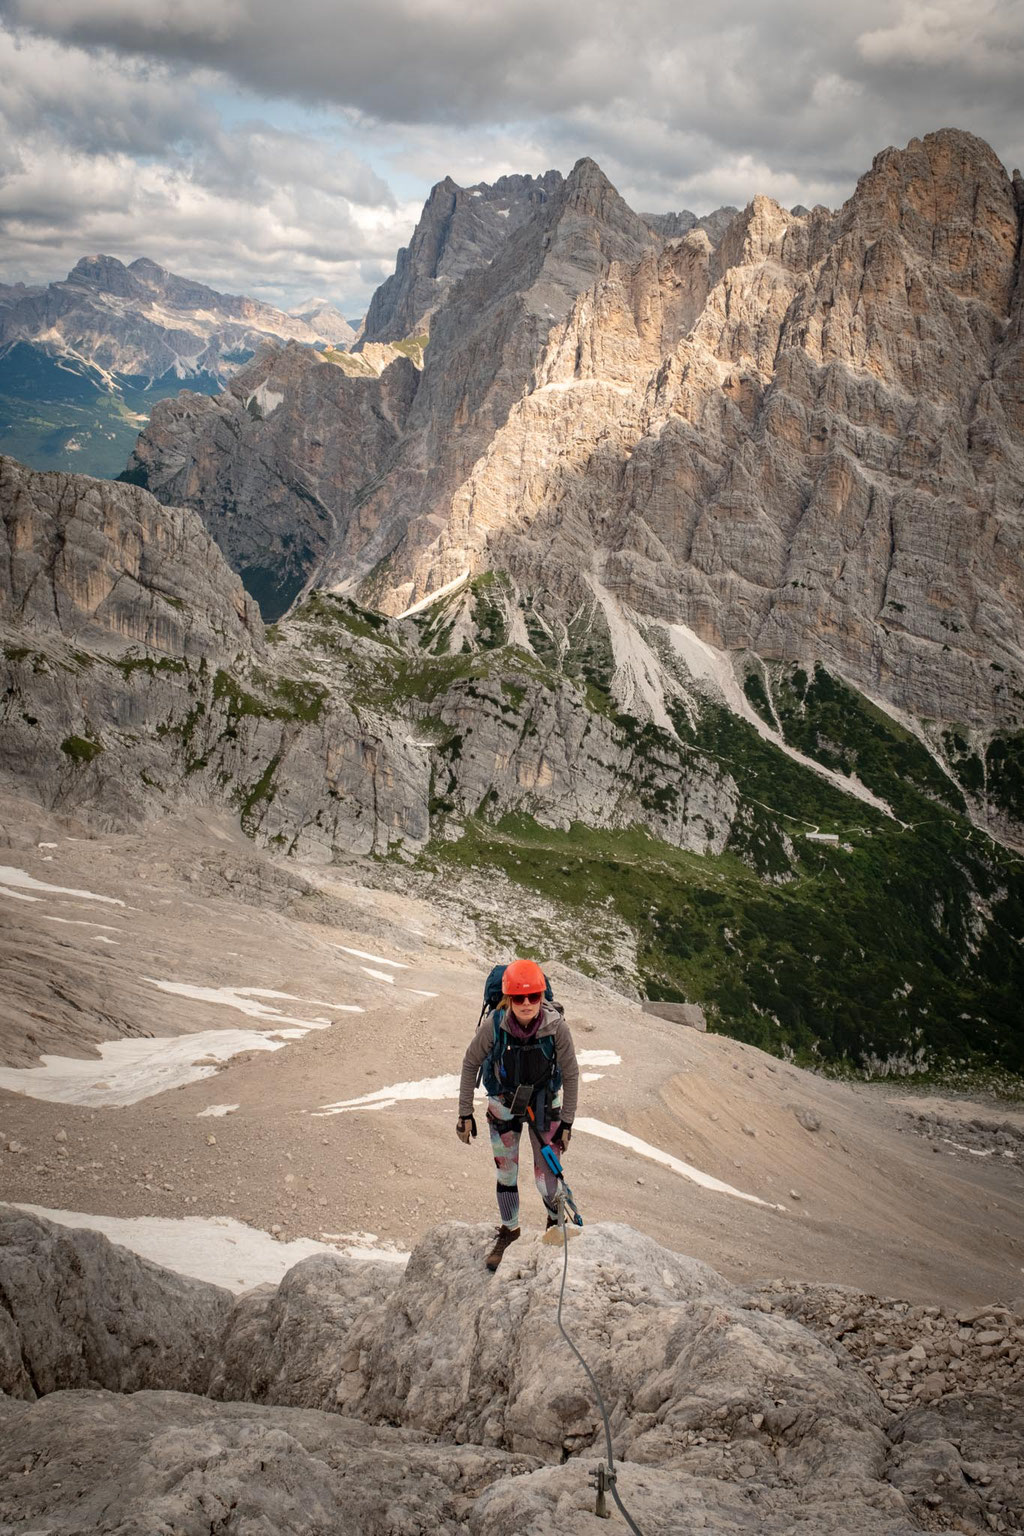 along a via ferrata leading to Forcella del Ghiacciaio. Forcella Piccola can be seen far in the distance